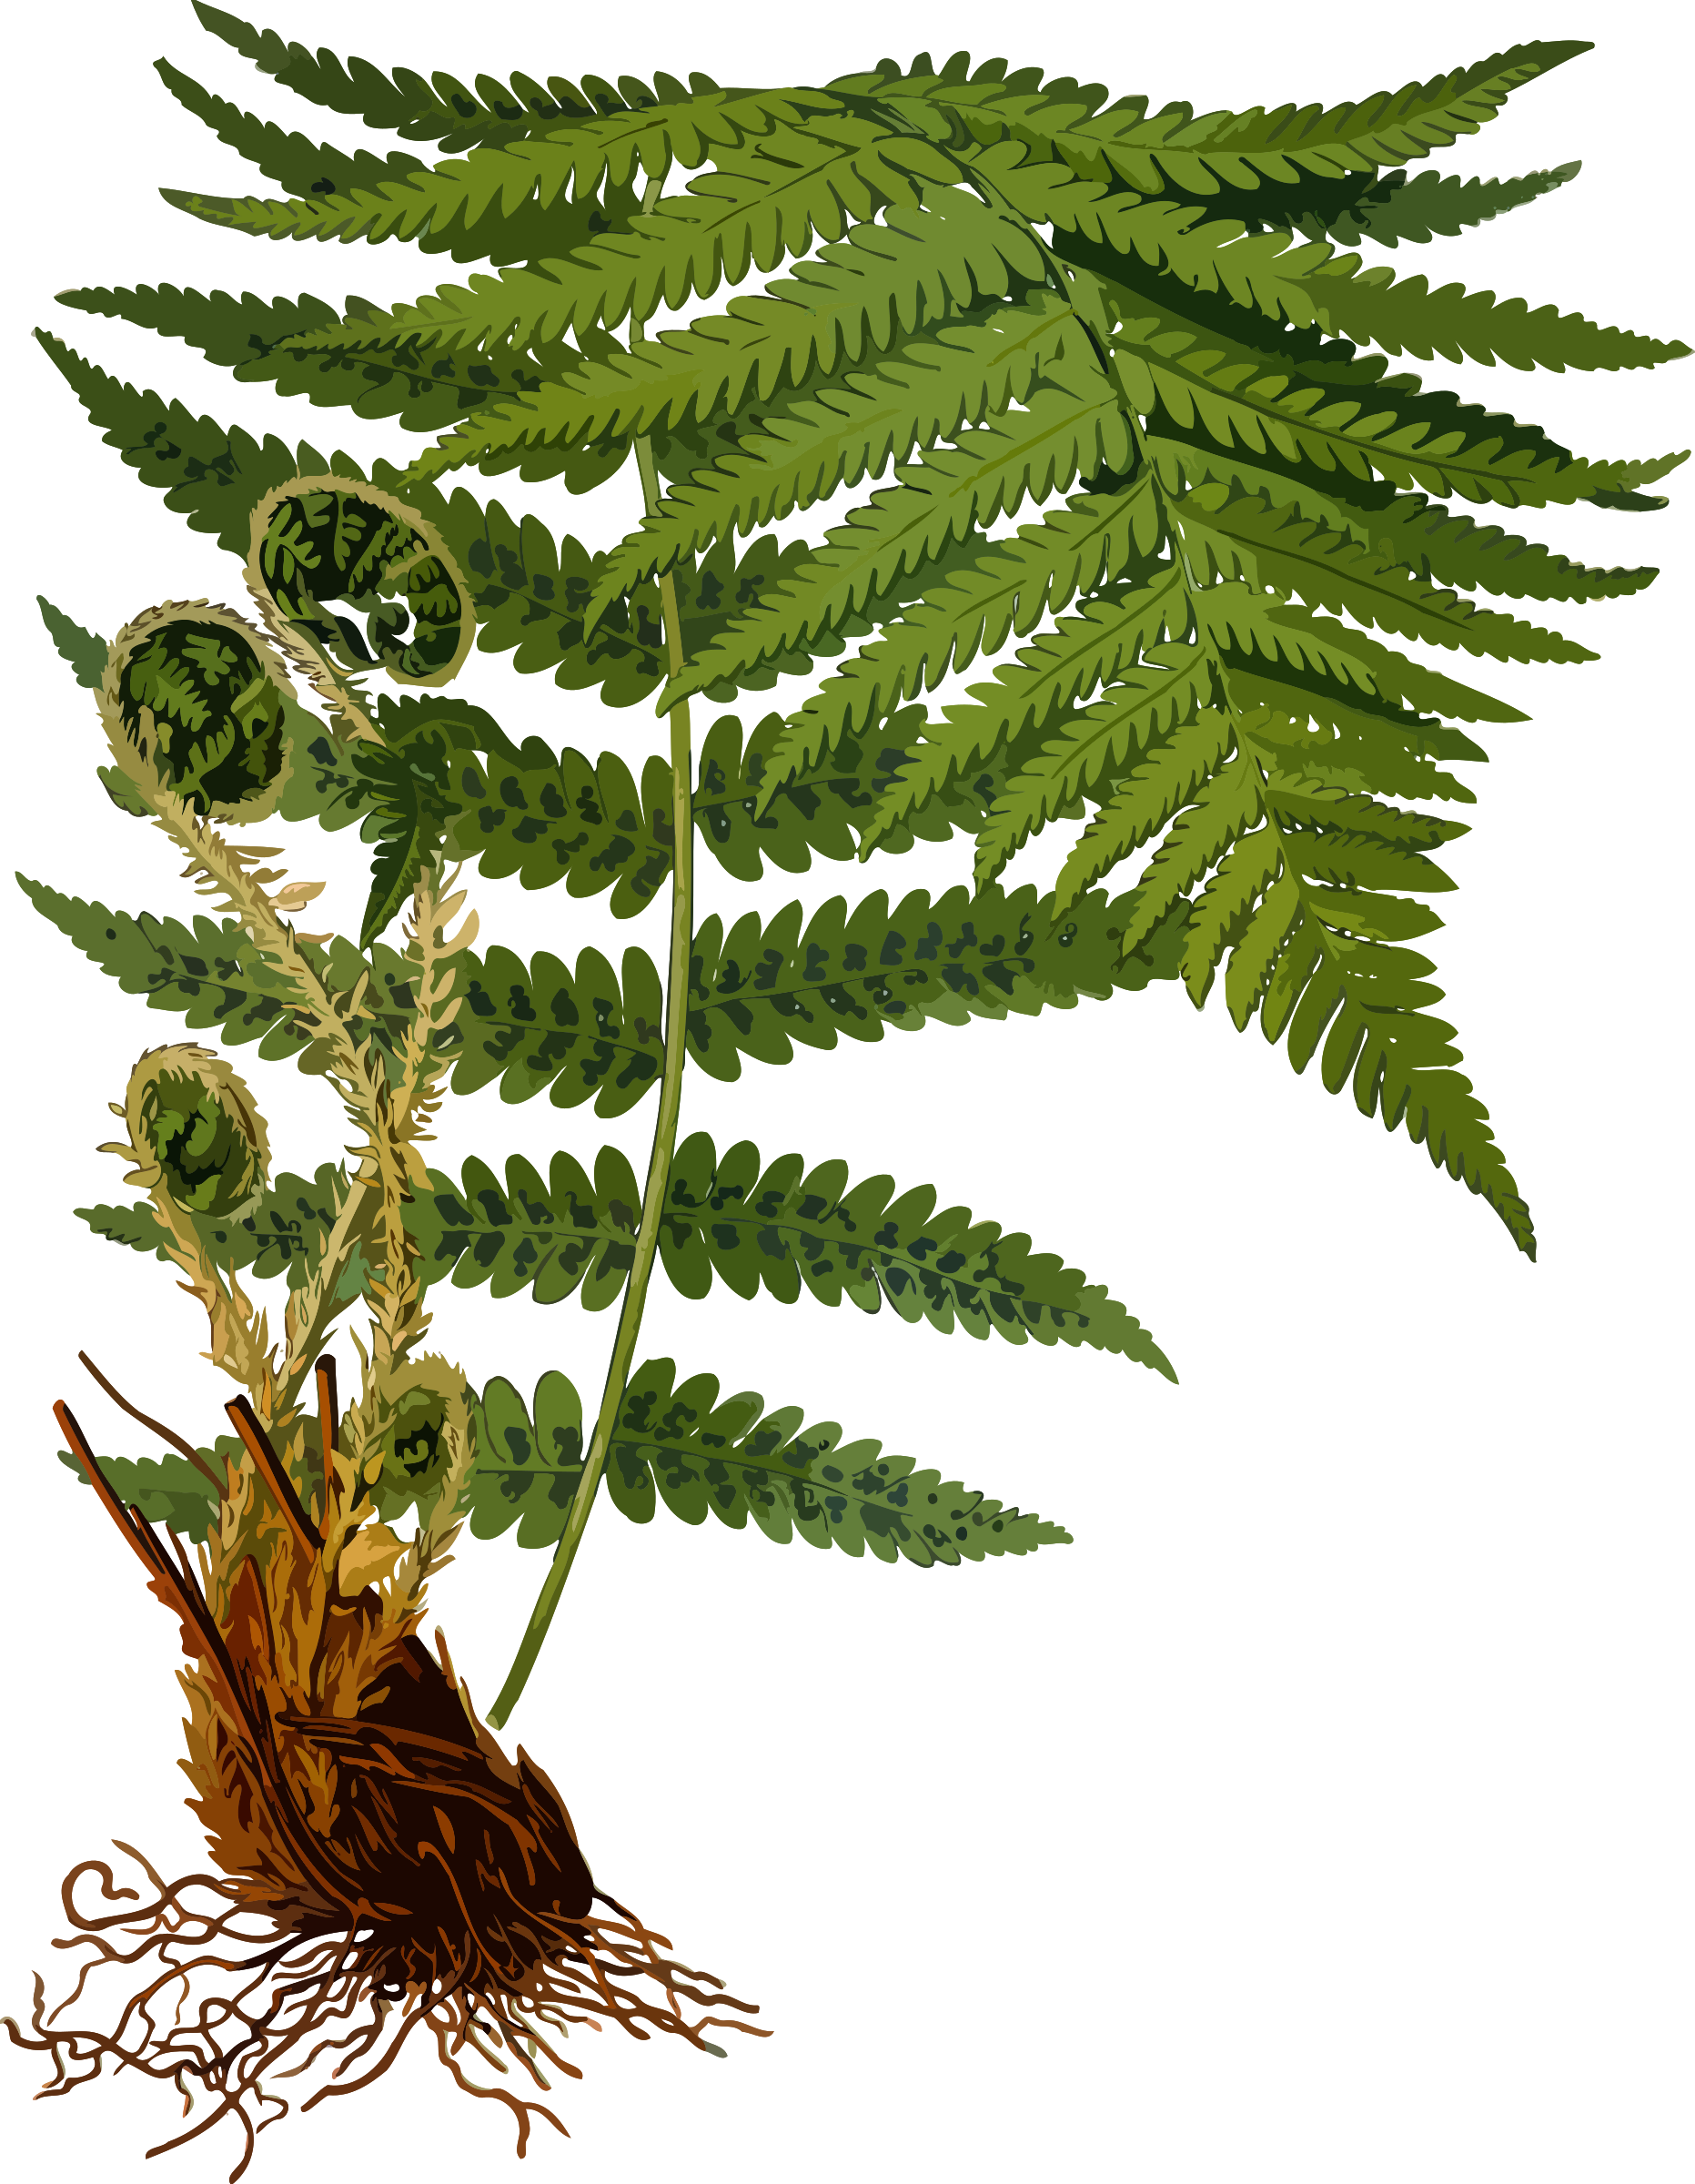 Male fern 2 (low resolution) by Firkin